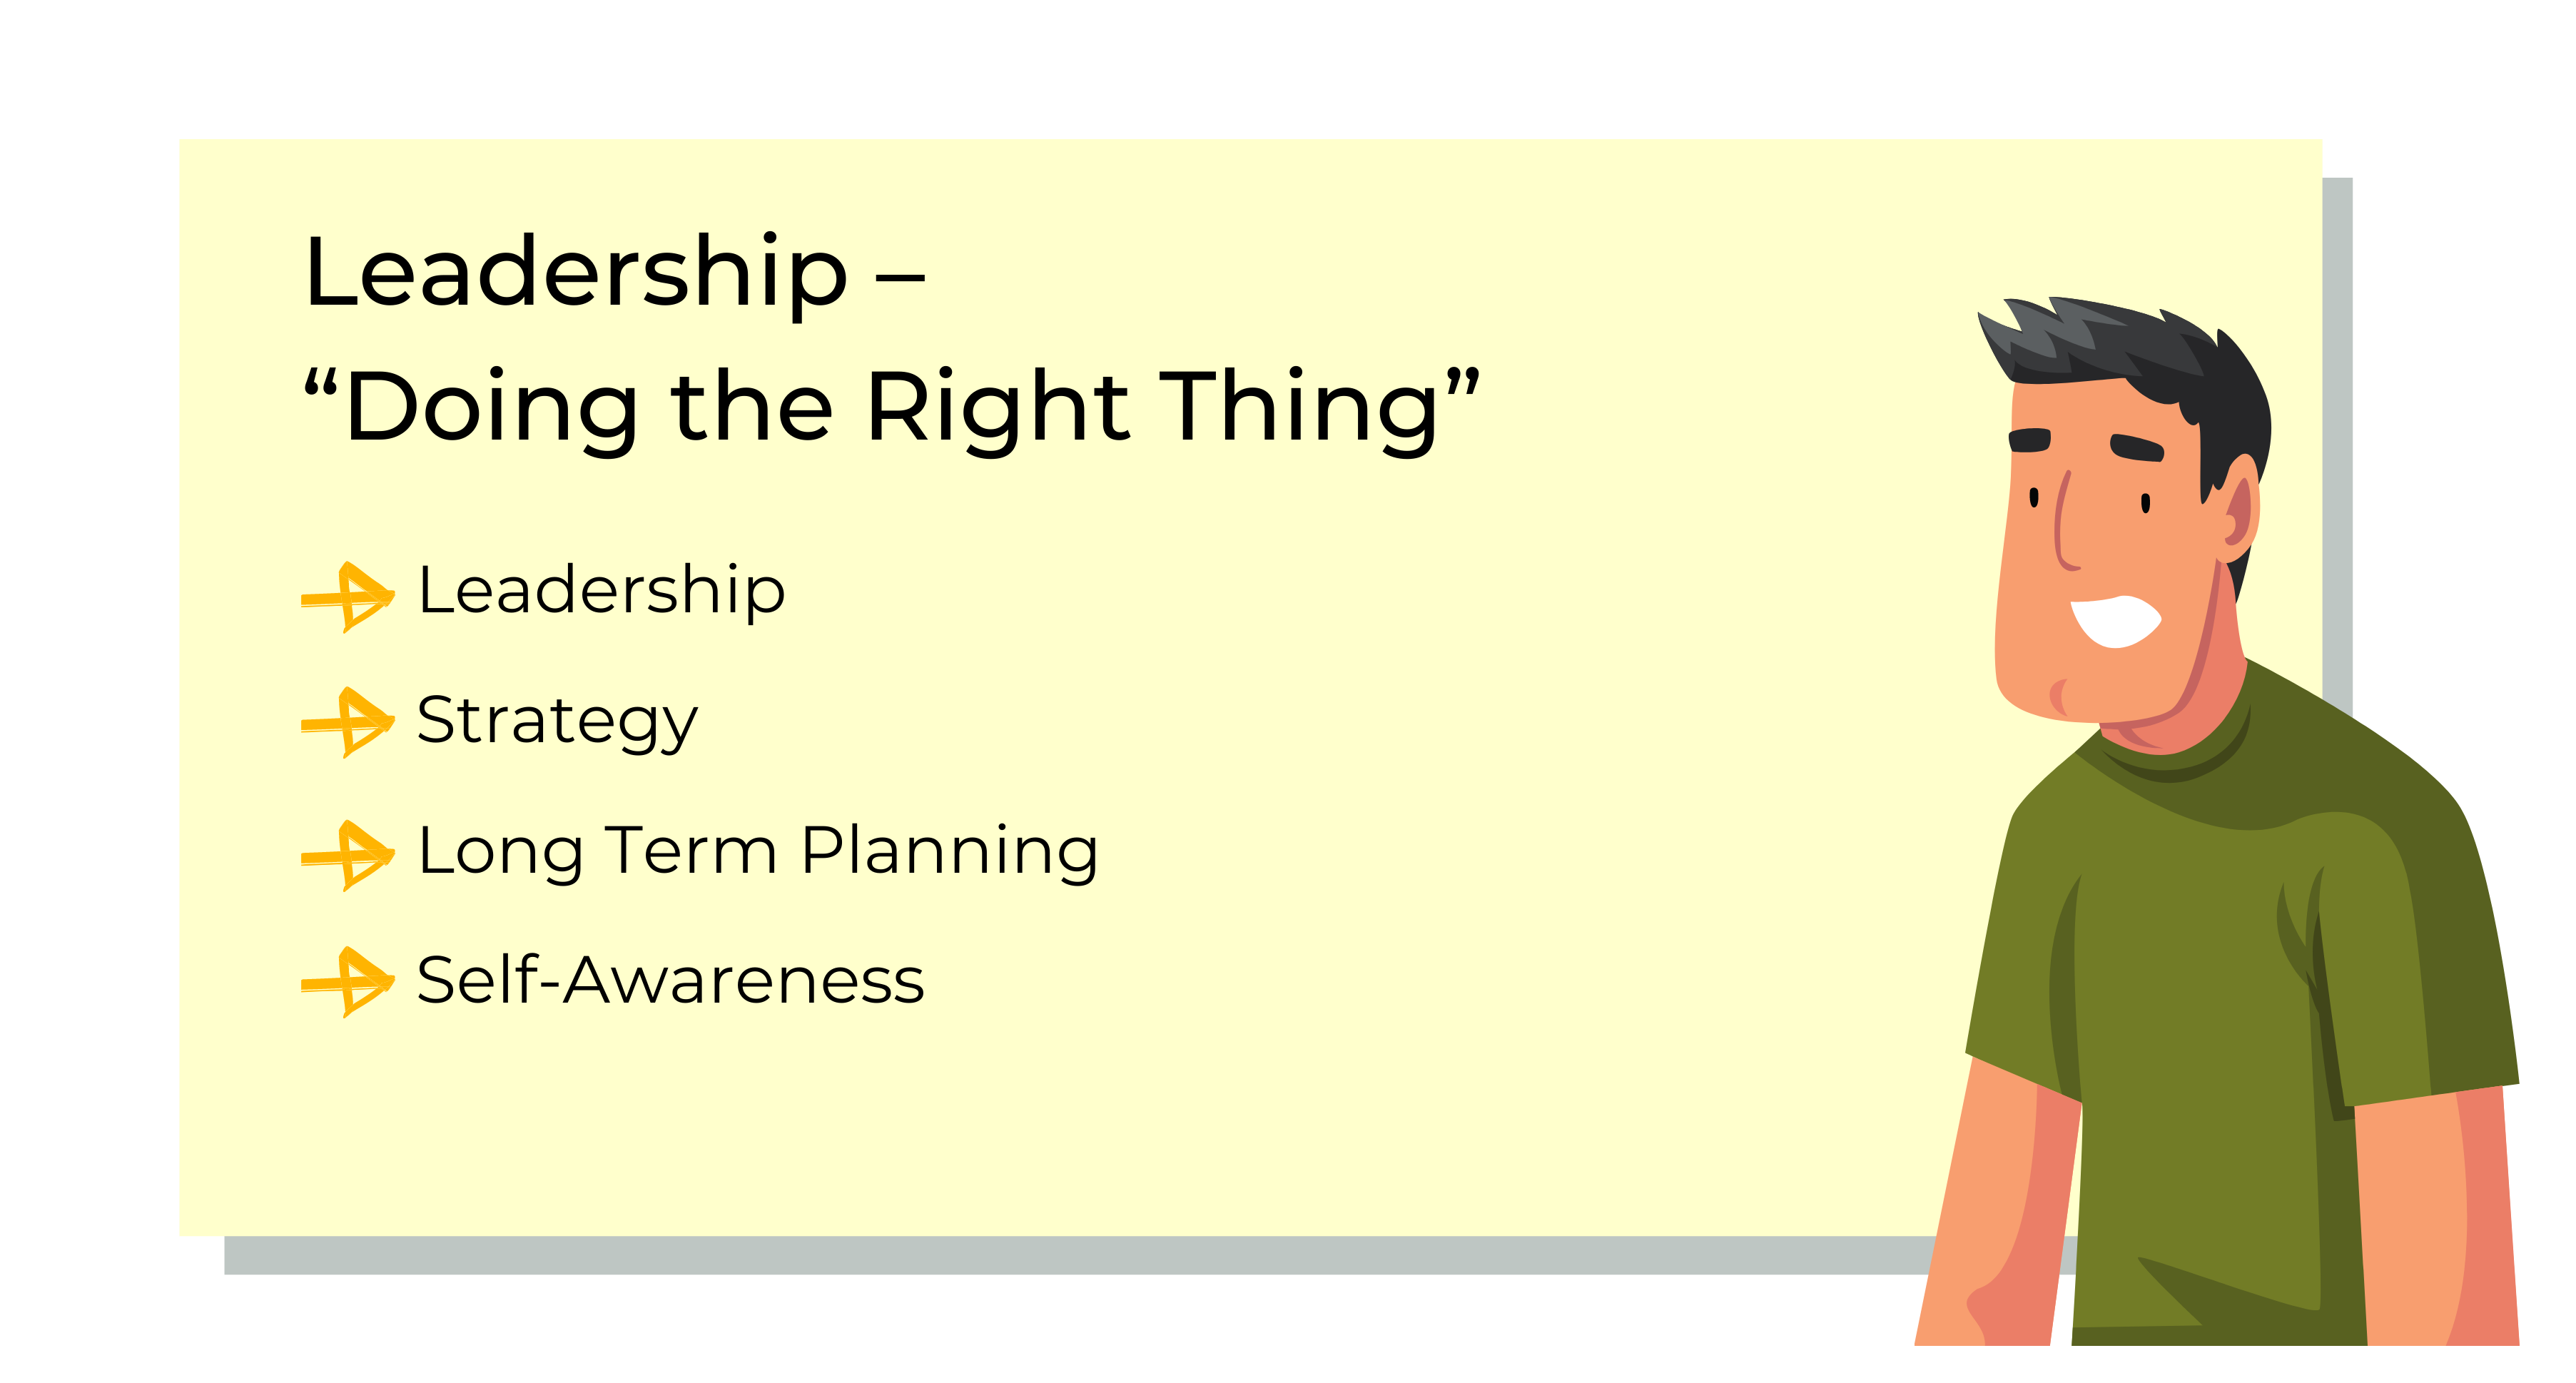 Leadership informational poster - doing the right thing involves leadership, strategy, long term planning and self-awareness